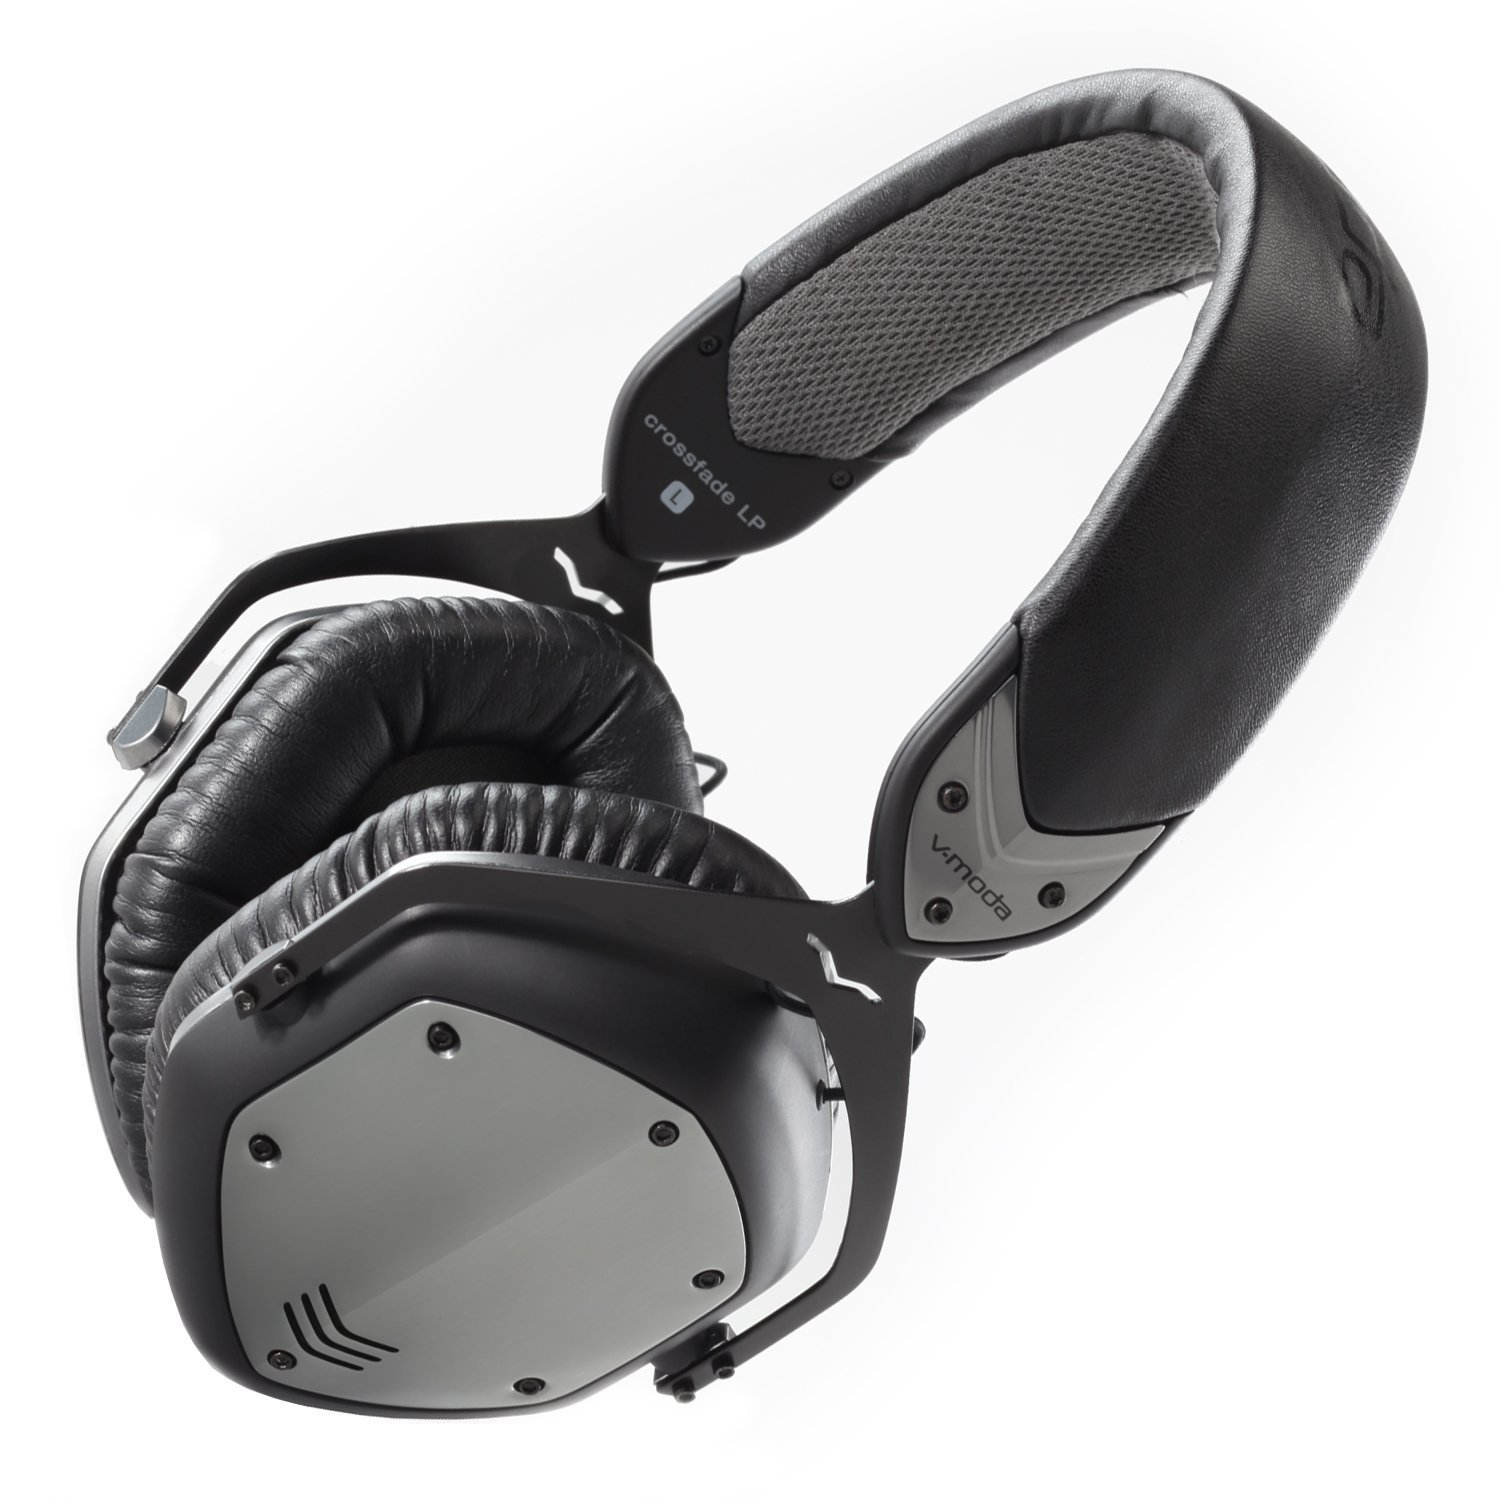 V-MODA Crossfade LP2 Studio Headphones